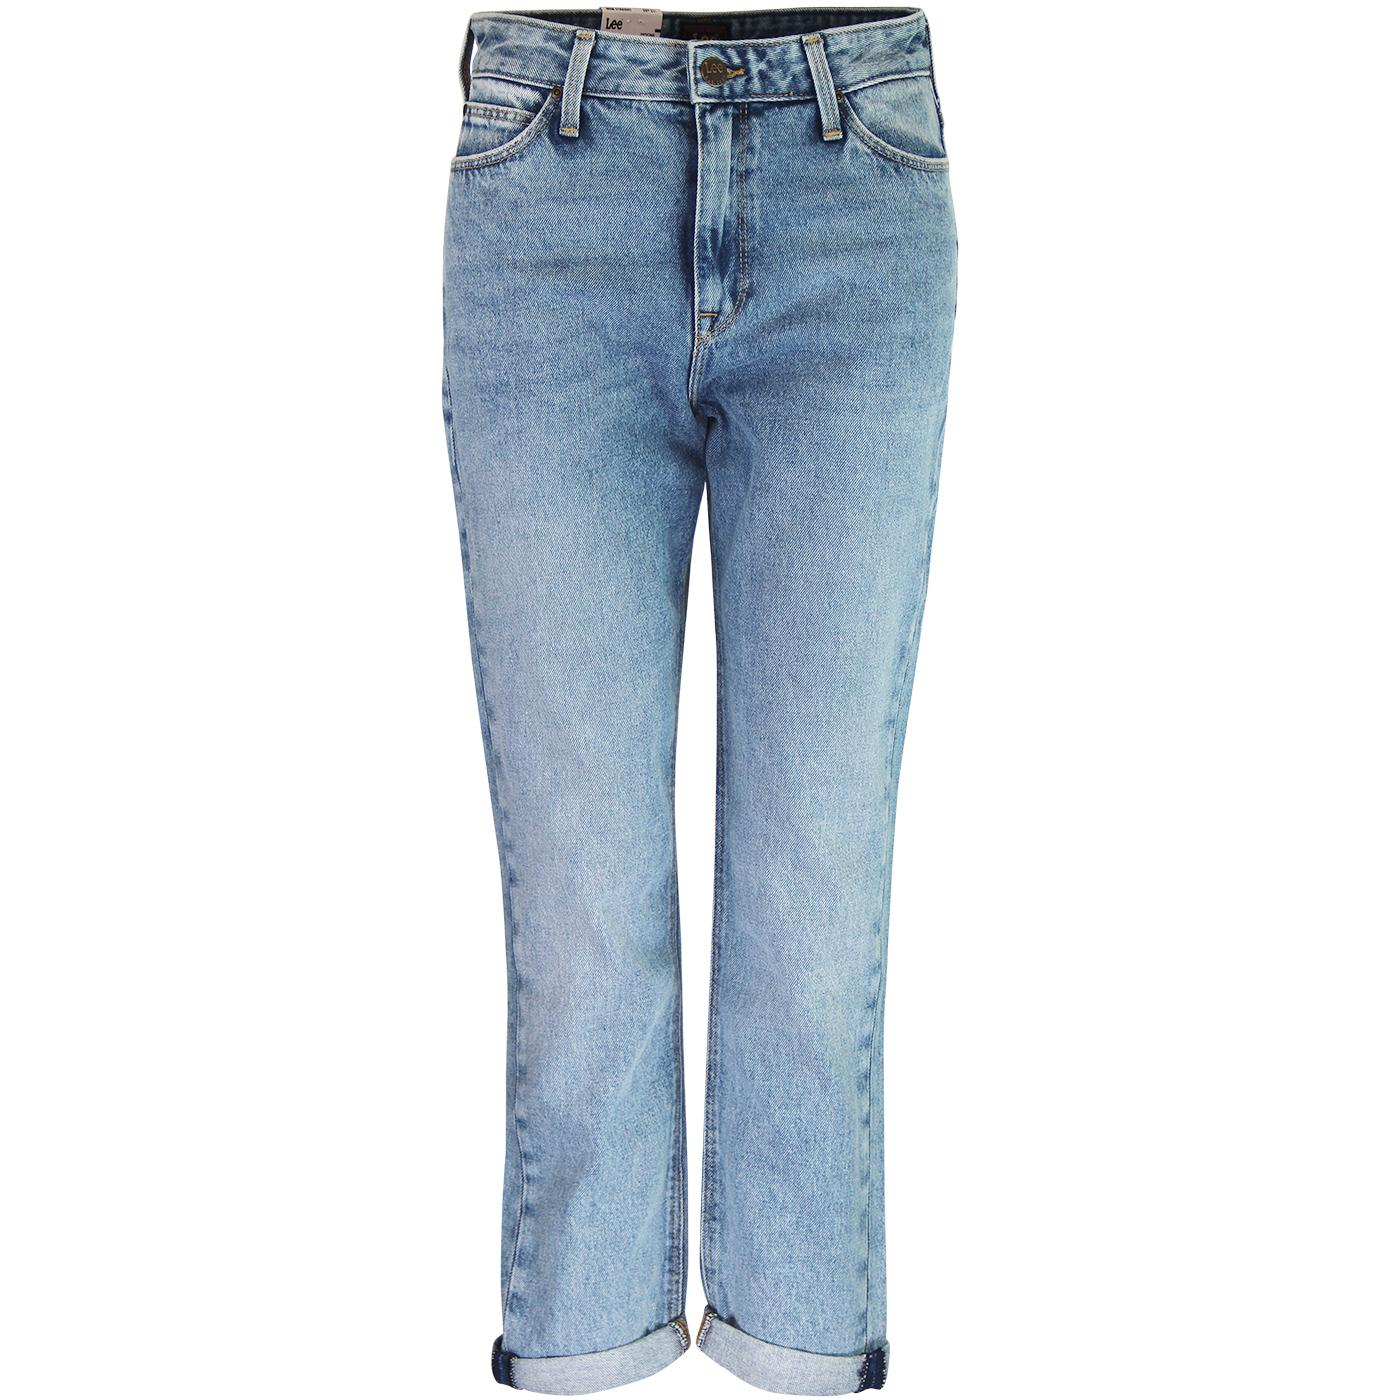 Mom Straight LEE Curved High Waist Jeans GASLIGHT